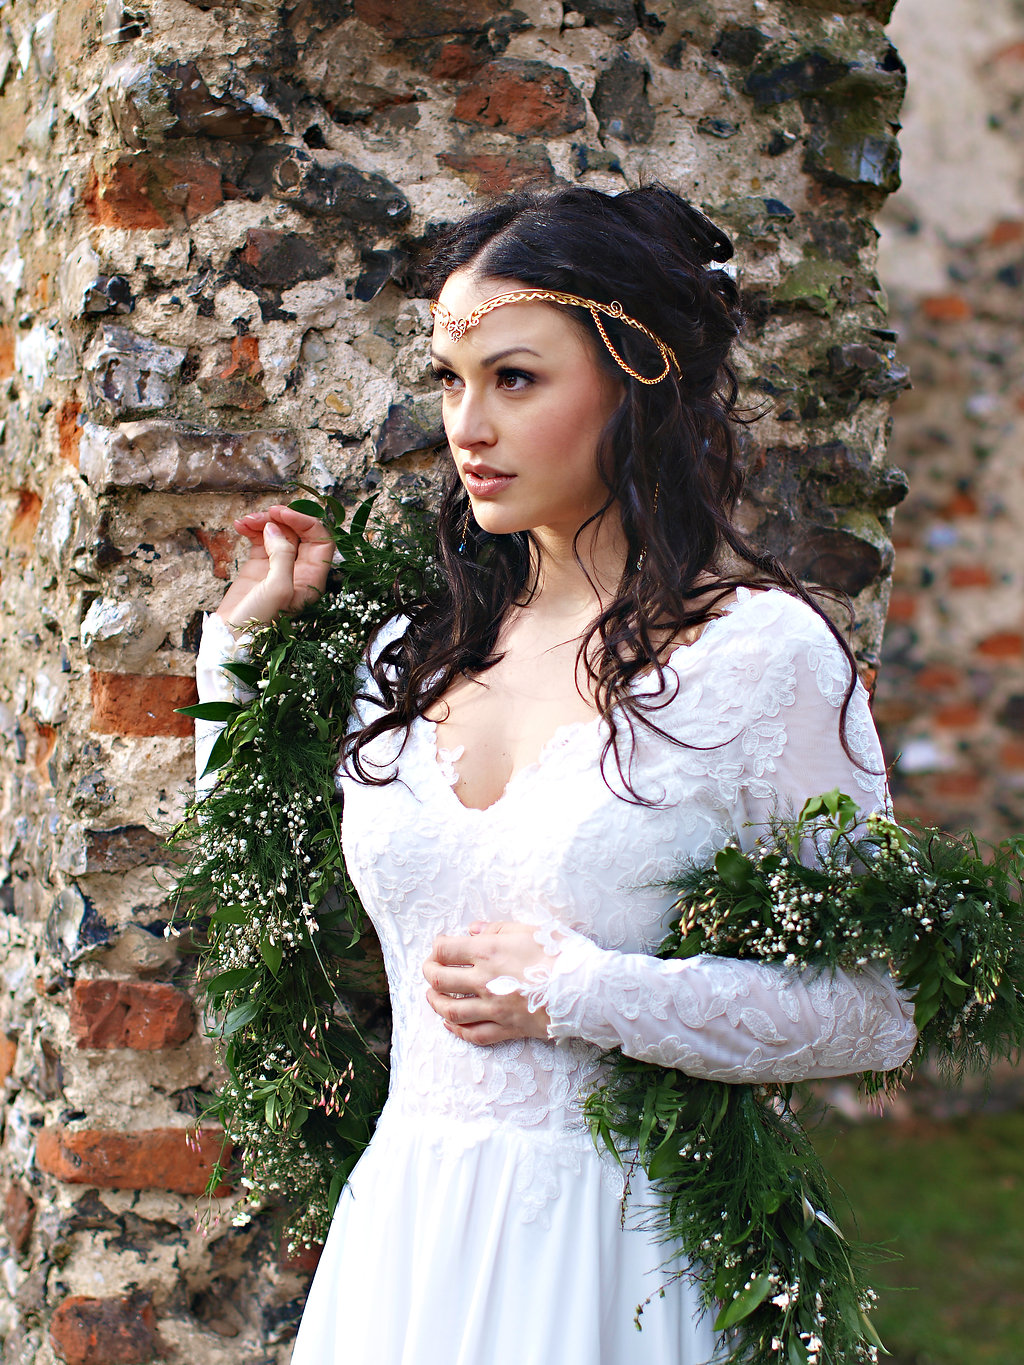 Circlet anyone? A beautiful alternative to a tiara, and who said you can't wear your bouquet?